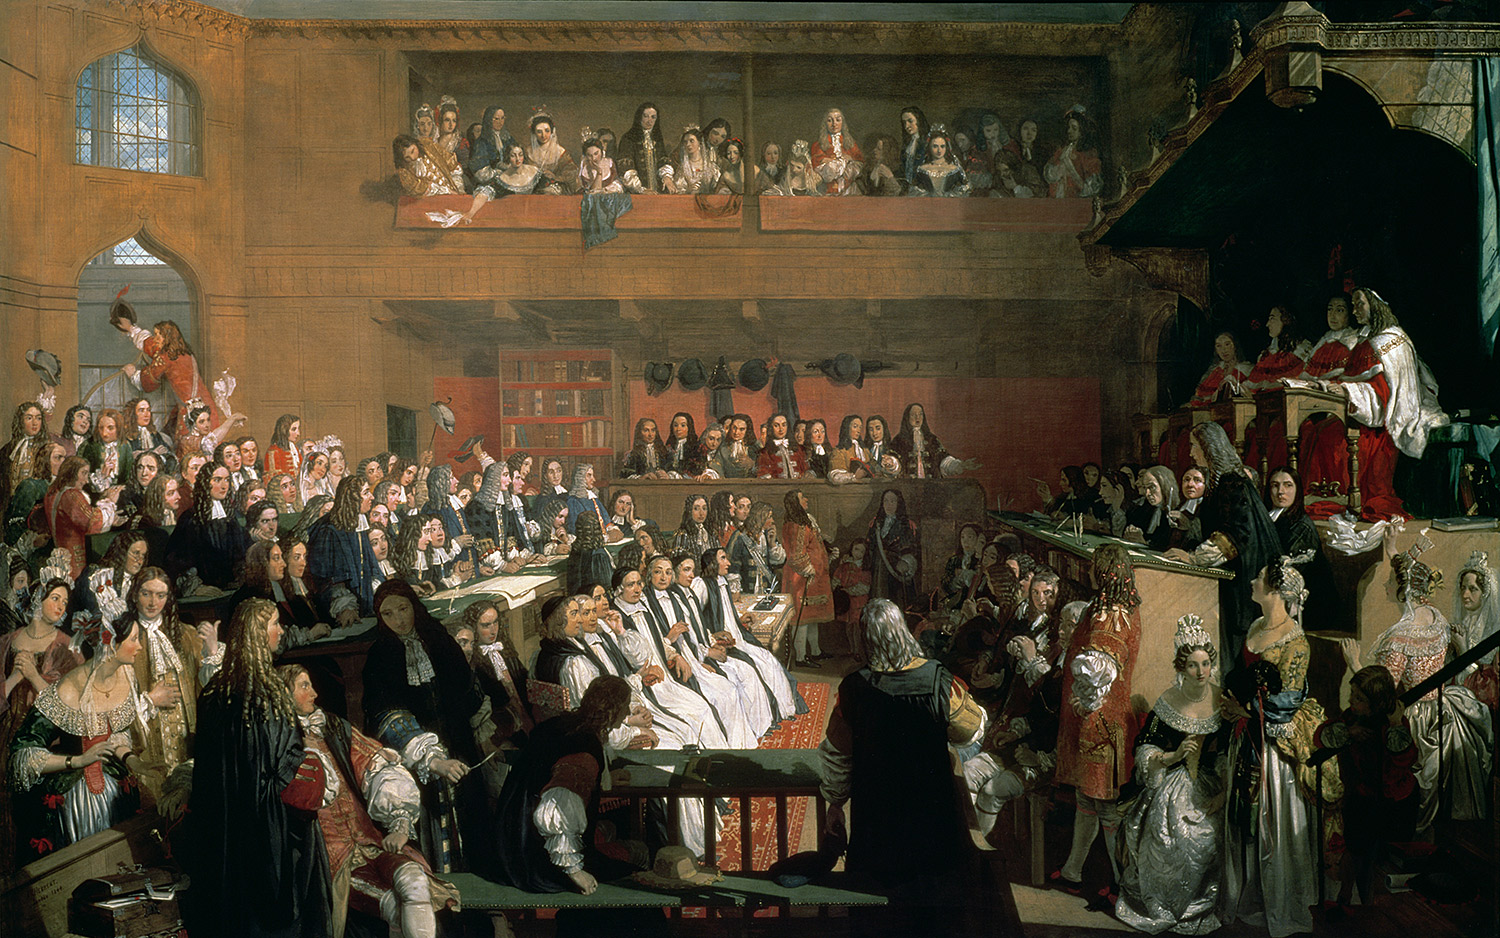 'The Trial of the Seven Bishops in the House of Commons During the Reign of James II' by John Herbert, 1844. Thomas Agnew's / Bridgeman Images